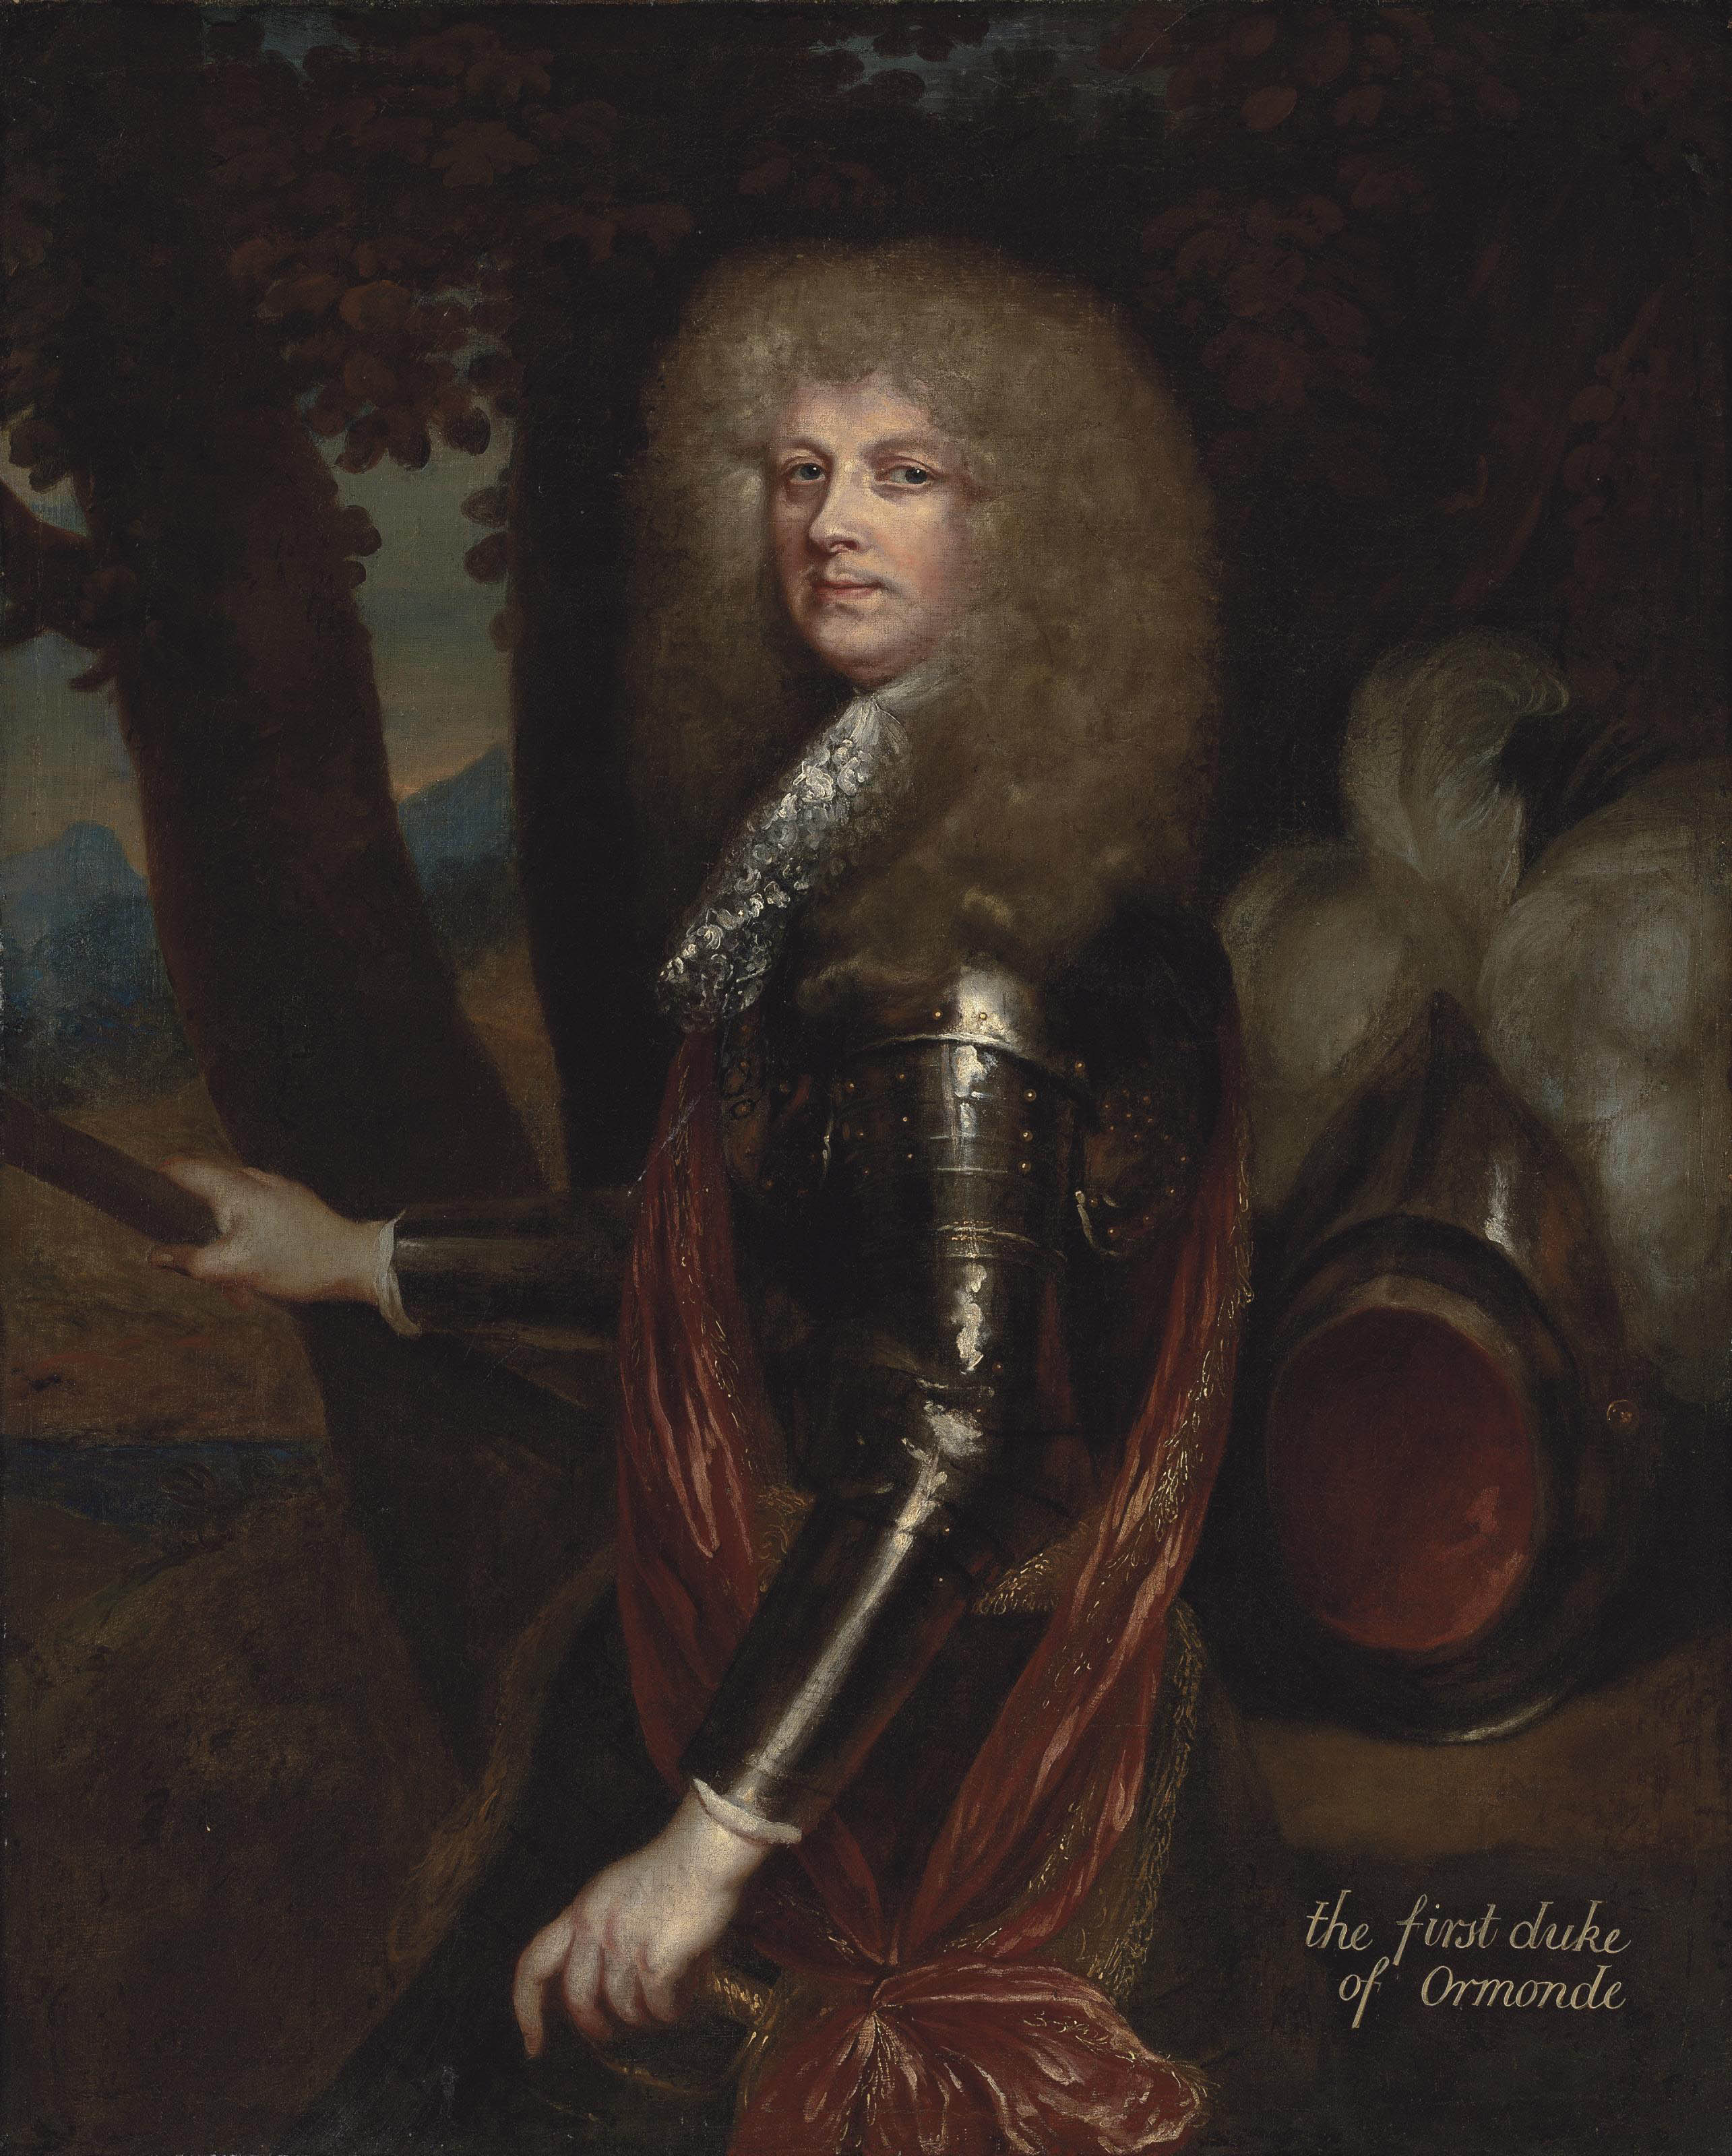 Portrait of James Butler, 1st Duke of Ormonde (1610-1688), half-length, in armour with a red sash, holding a baton, with a plumed helmet, in a wooded landscape